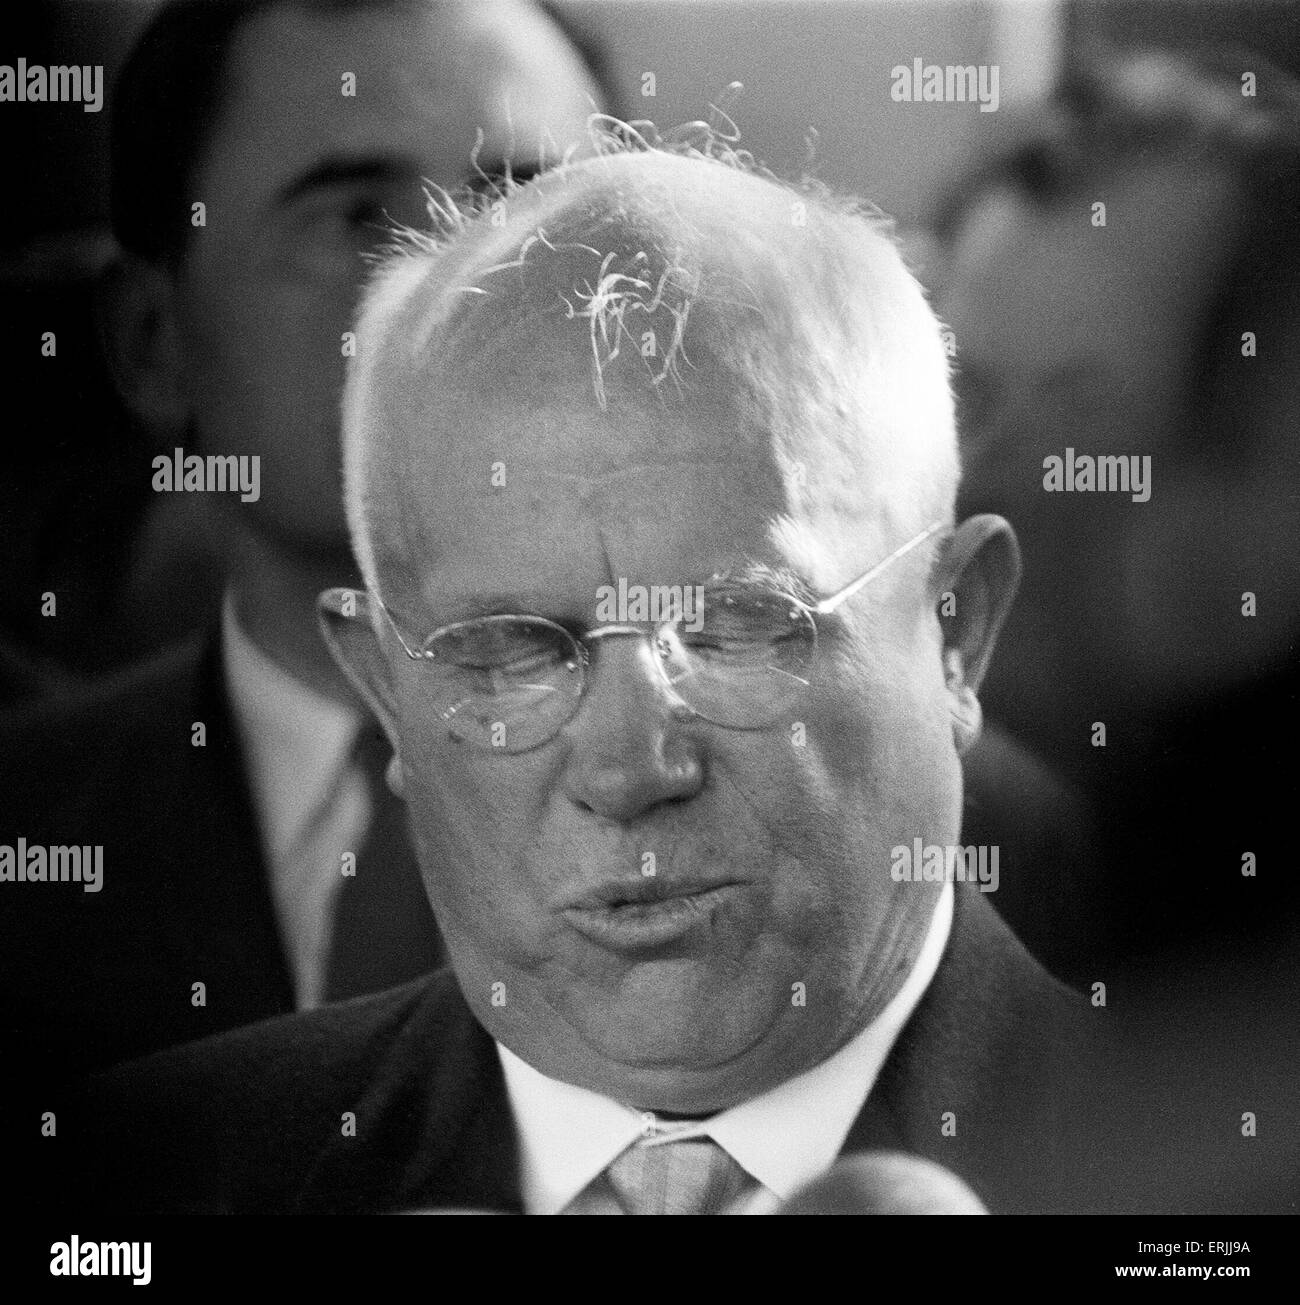 Soviet Premier Nikita Khrushchev, pictured in Vienna, Austria for talks with American President John F Kennedy. - Stock Image